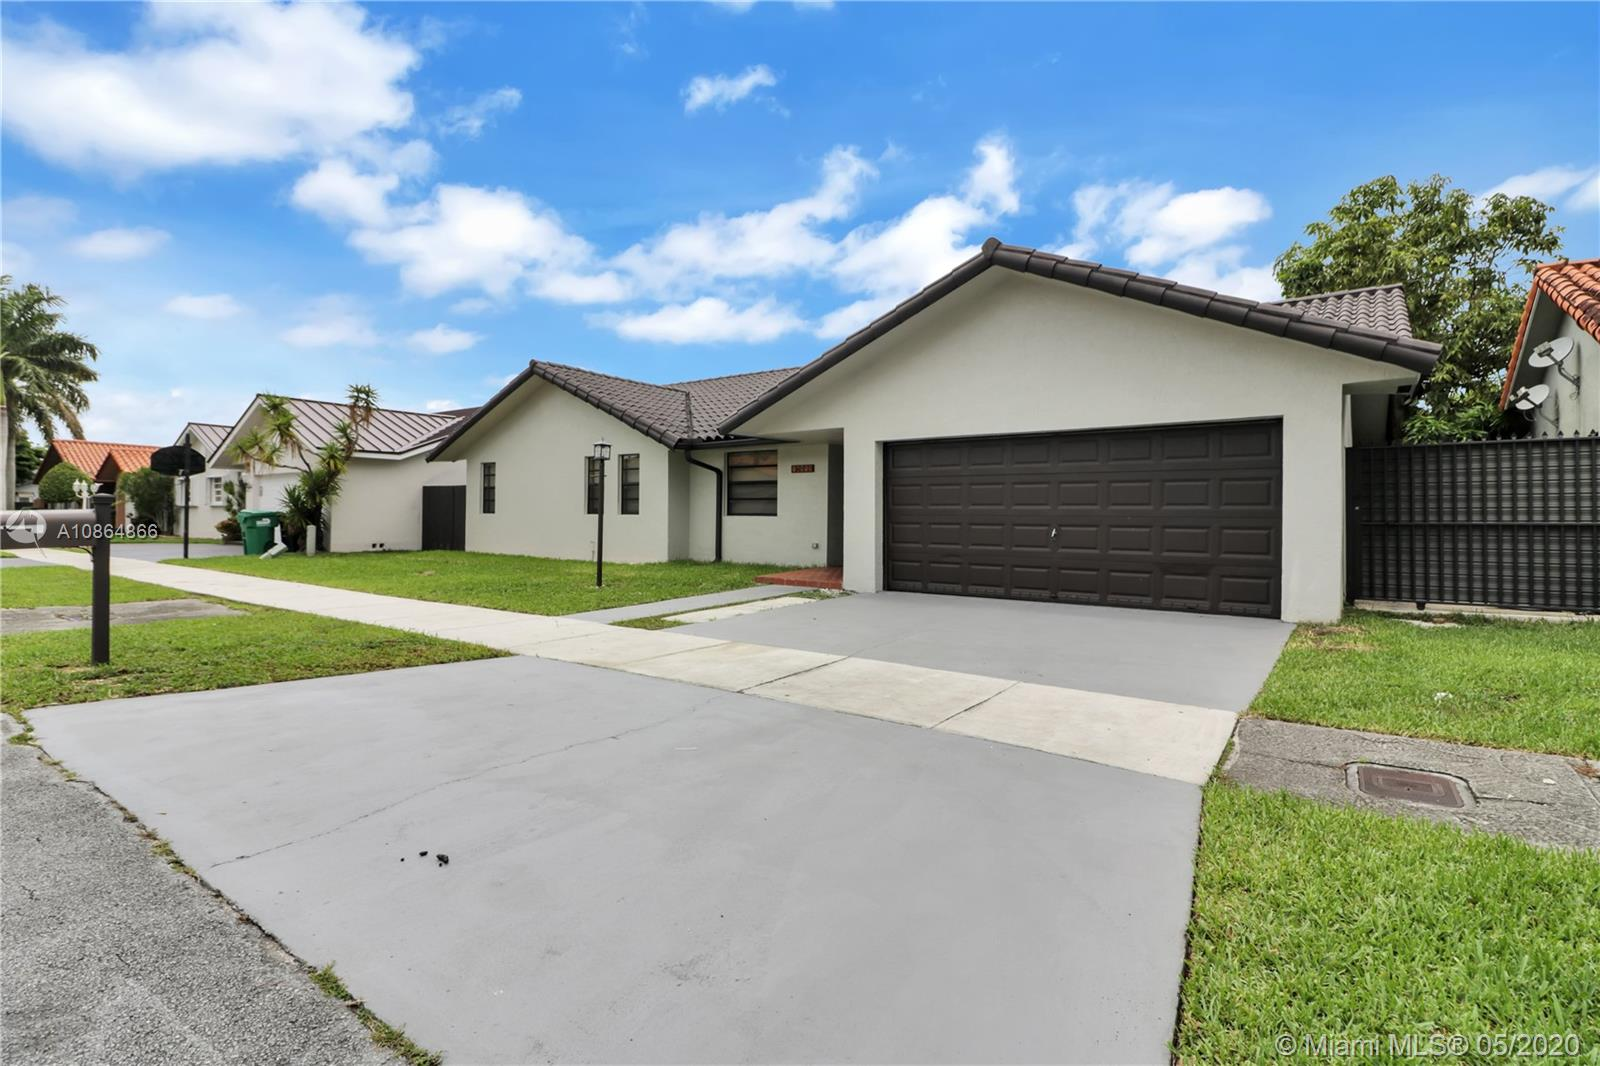 14575 SW 110th Ter  For Sale A10864866, FL